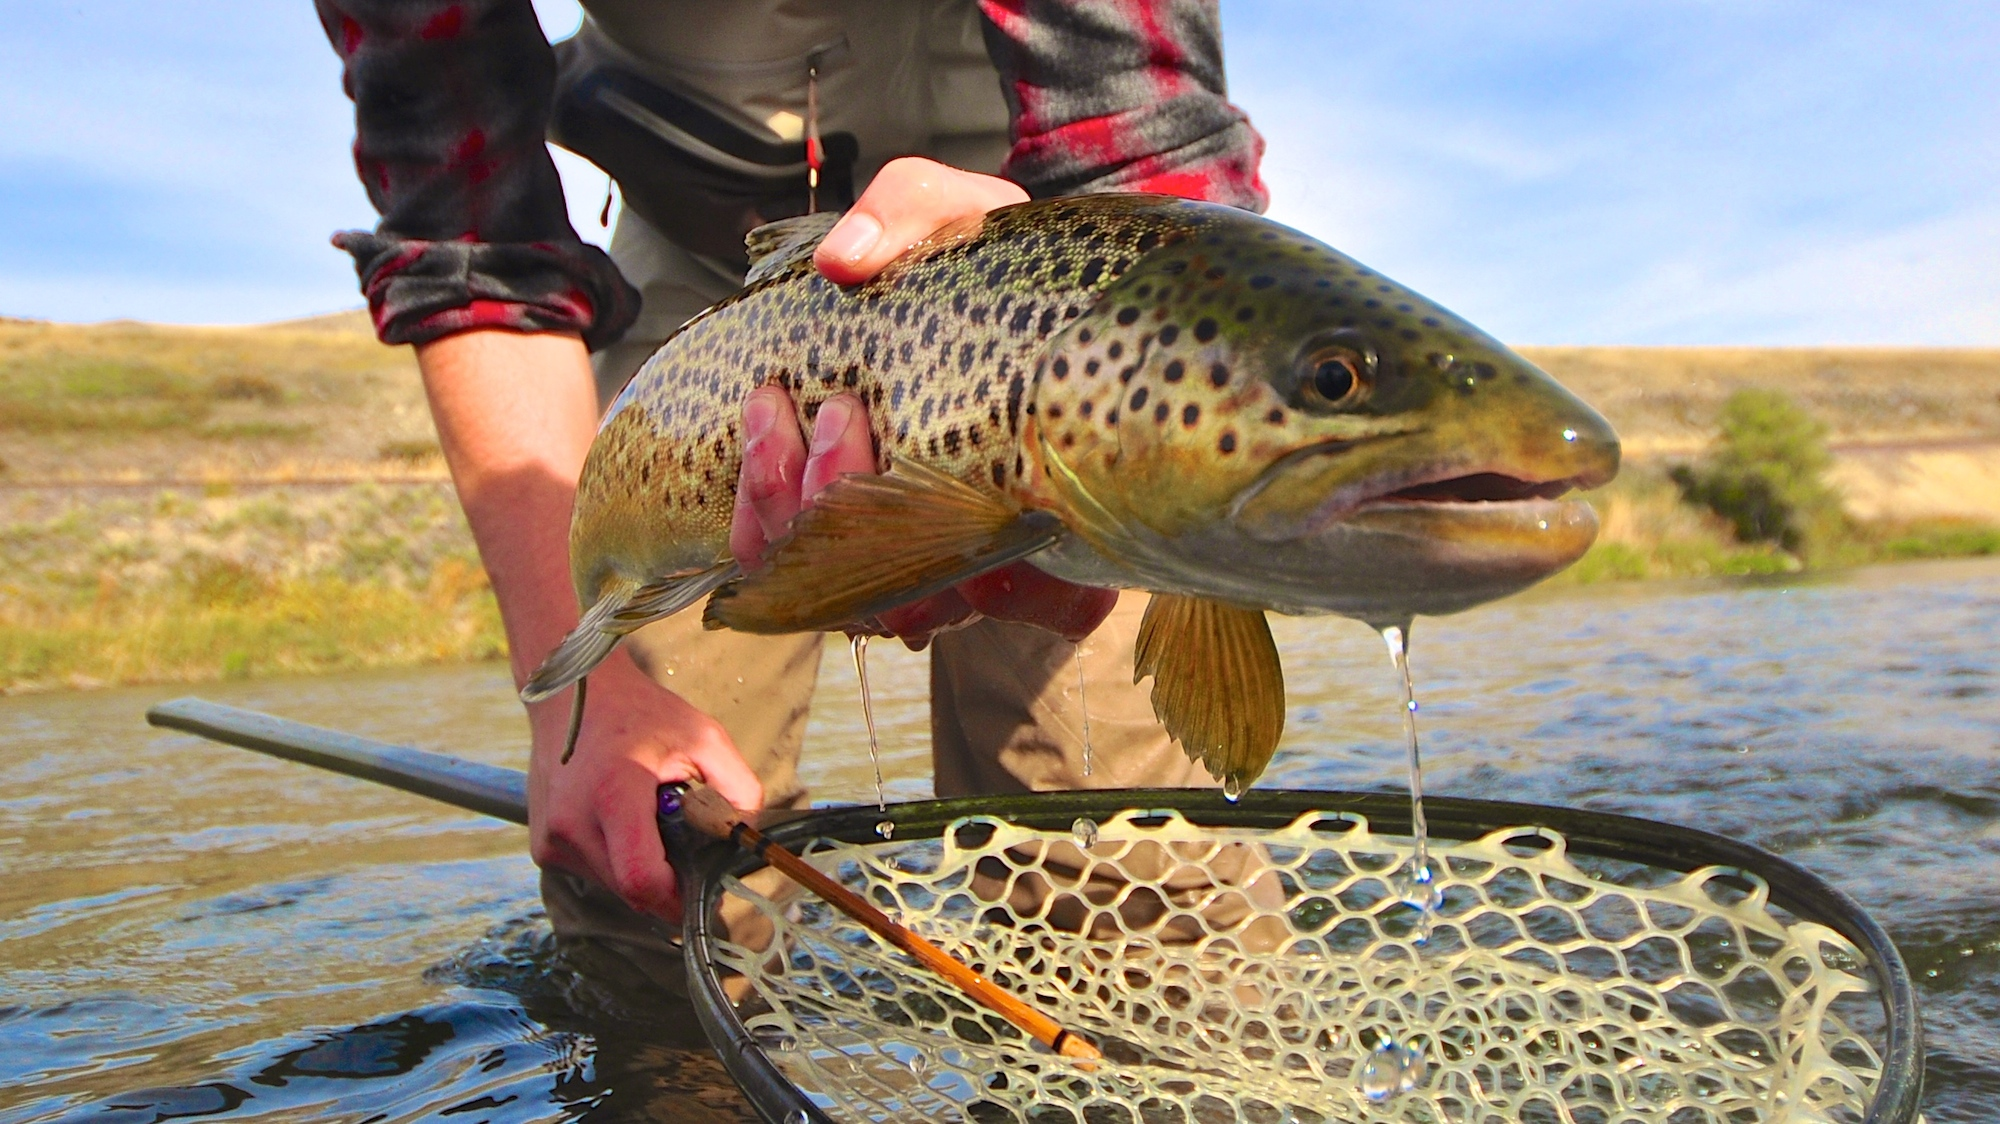 Missouri River Montana Fishing Report 10.27.14